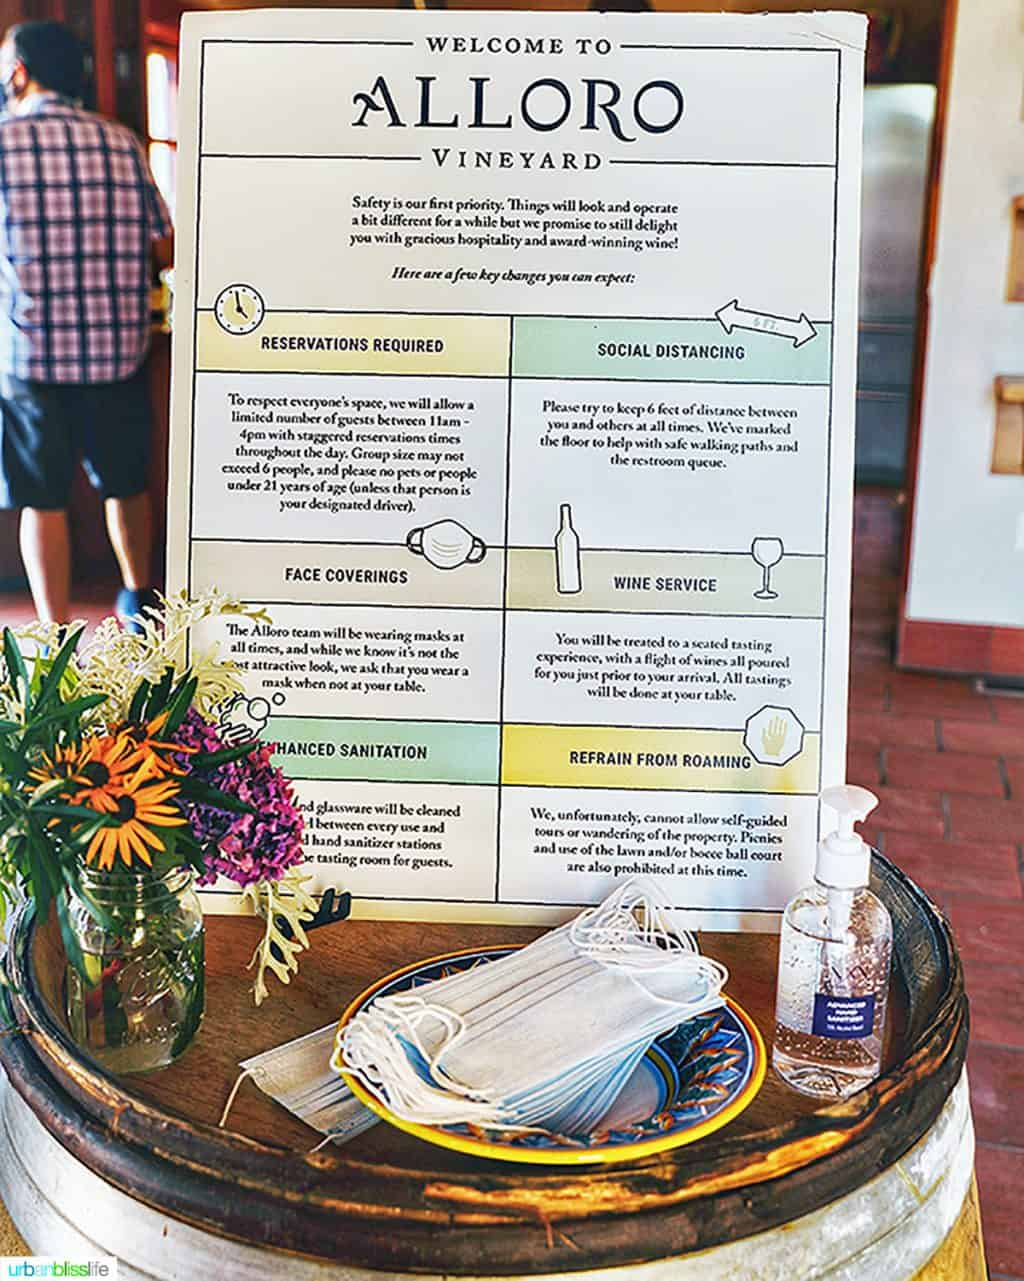 COVID safety guidelines for wine tasting at Alloro Vineyards